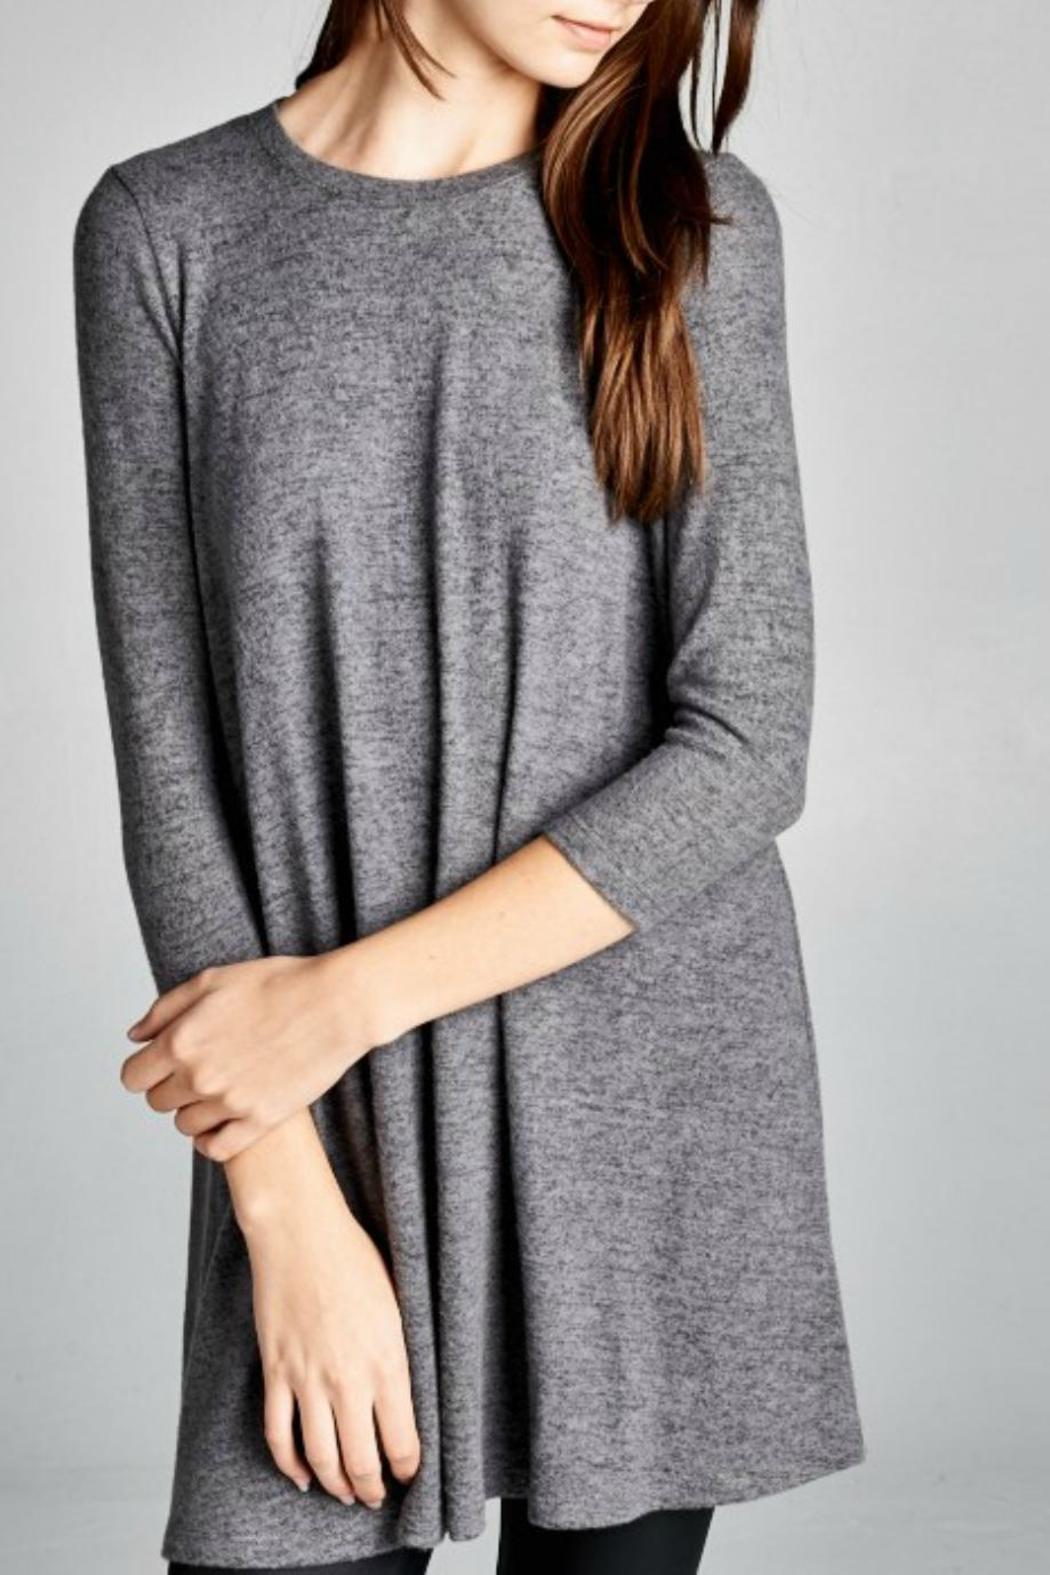 Sweater Tunic Dress from Mississippi by Irie Boutique — Shoptiques